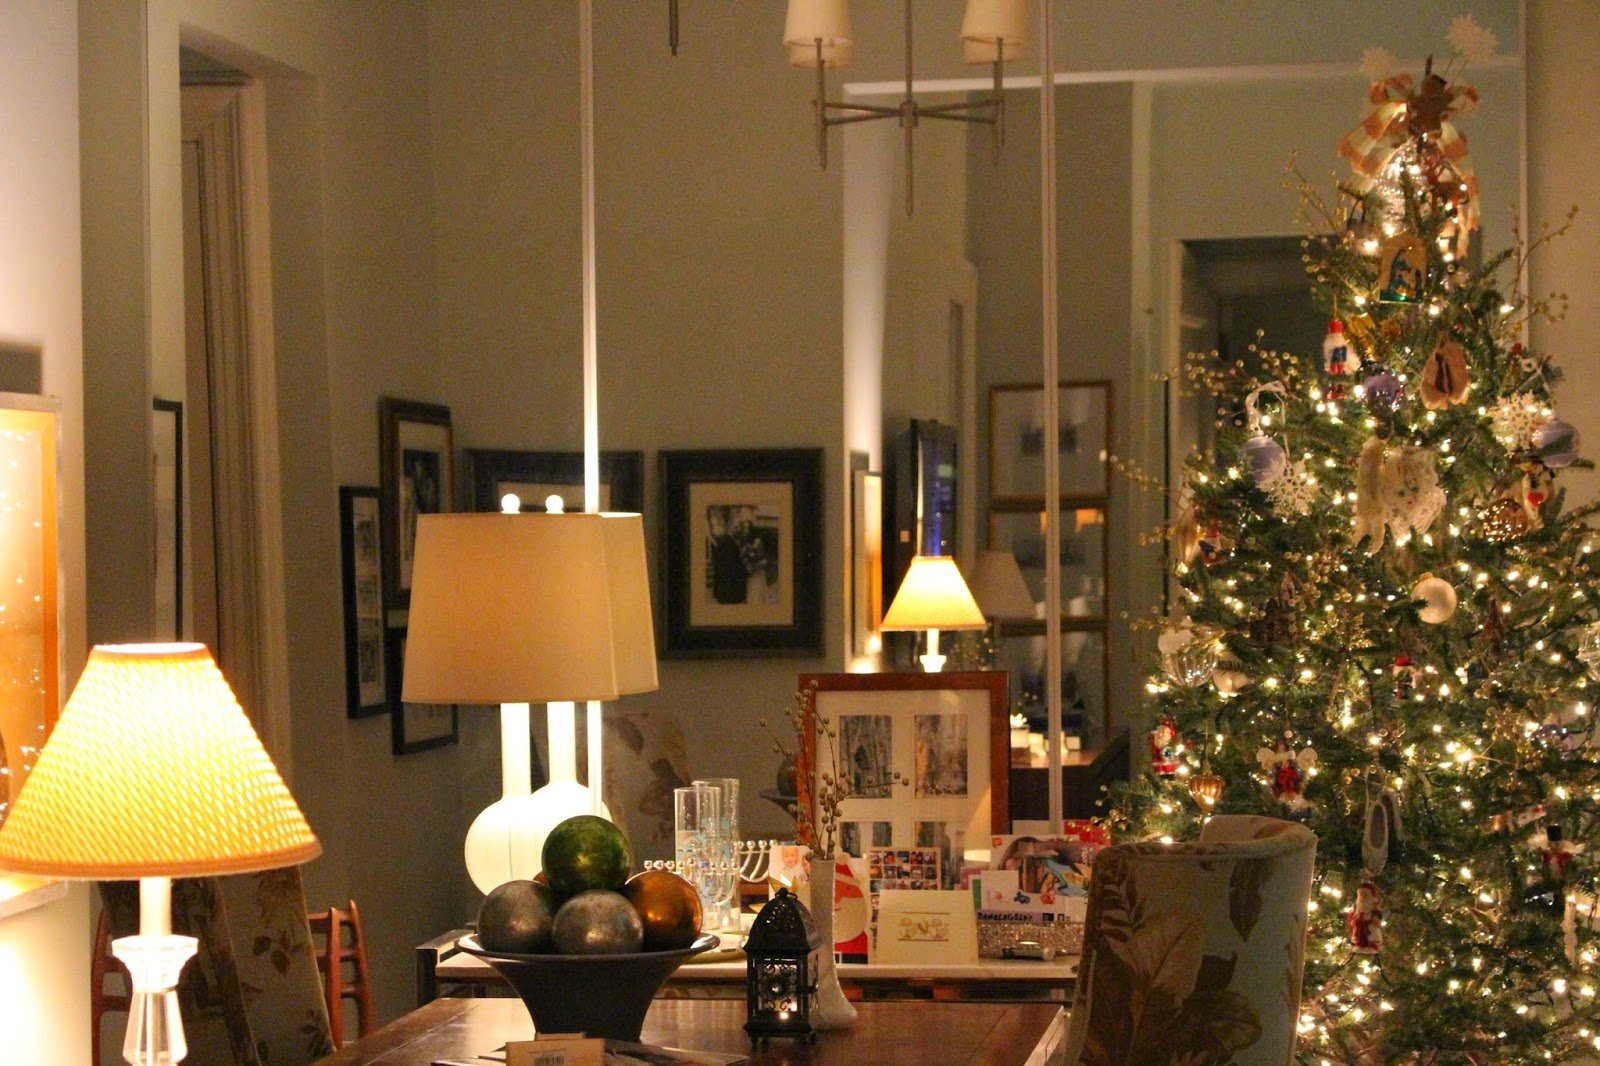 holiday decorating in small spaces my nyc apartment at christmas - Apartment Christmas Decorations